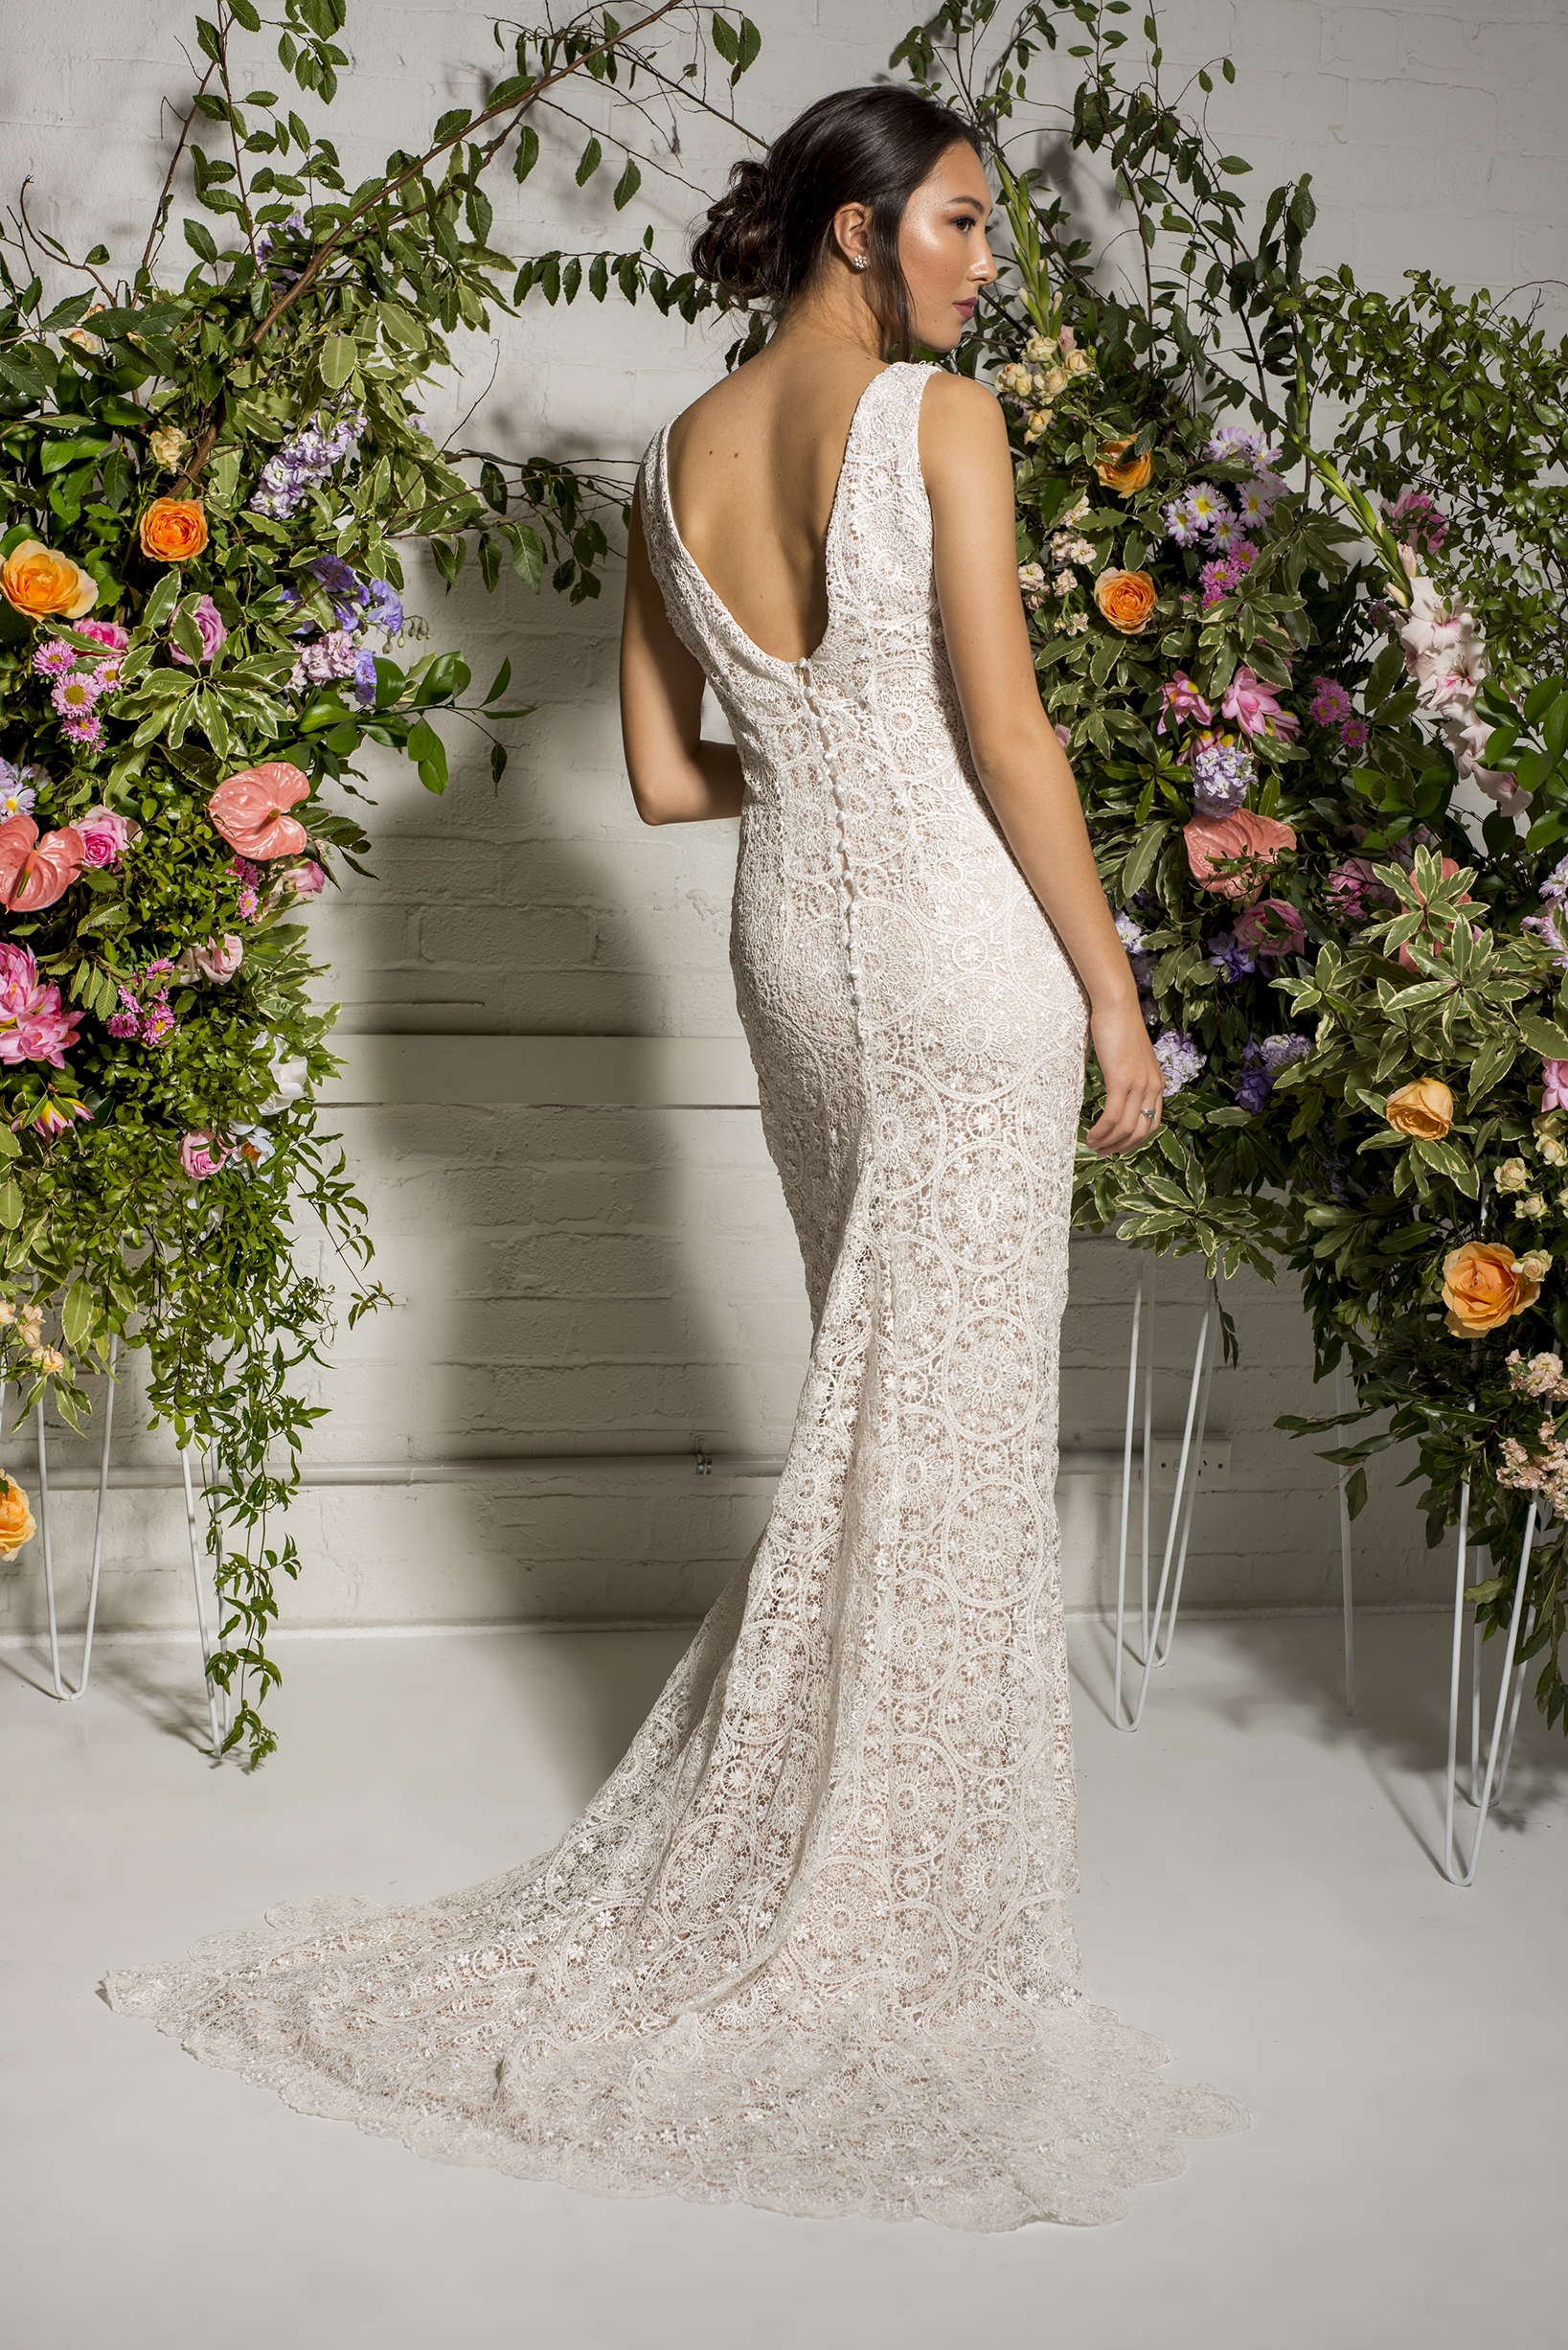 Auckland bridal store - Amber Whitecliffe lace wedding dress